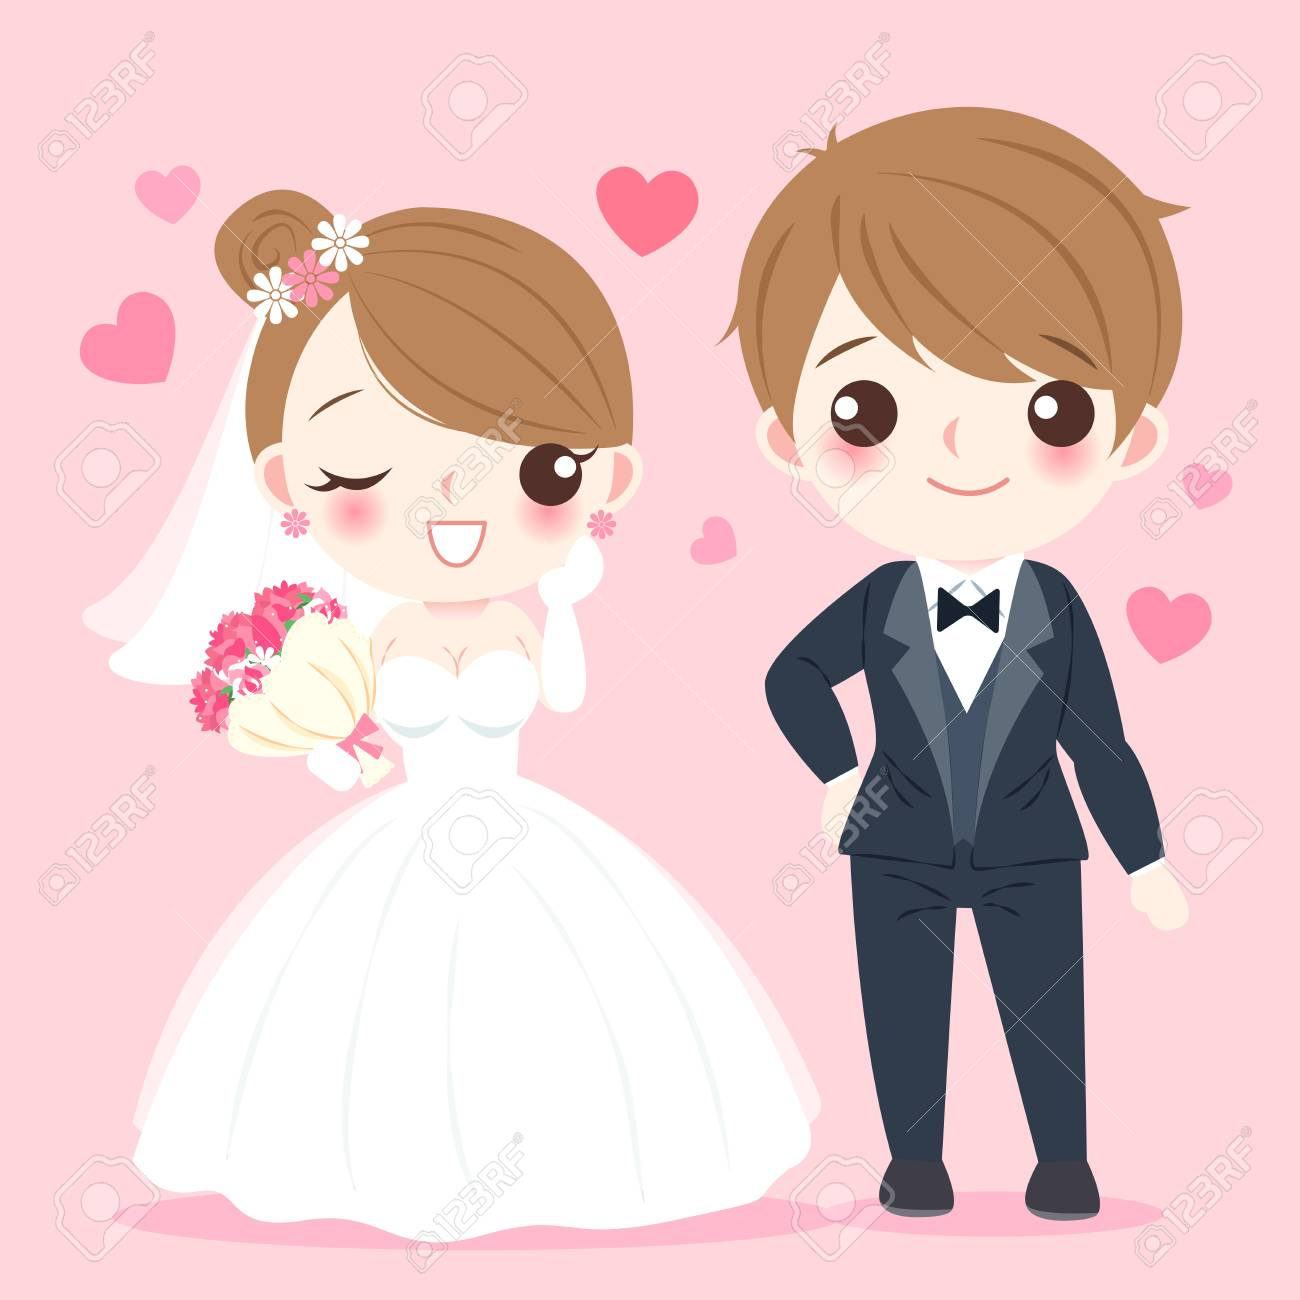 Cute cartoon illustration of married couple on pink background - 92042085